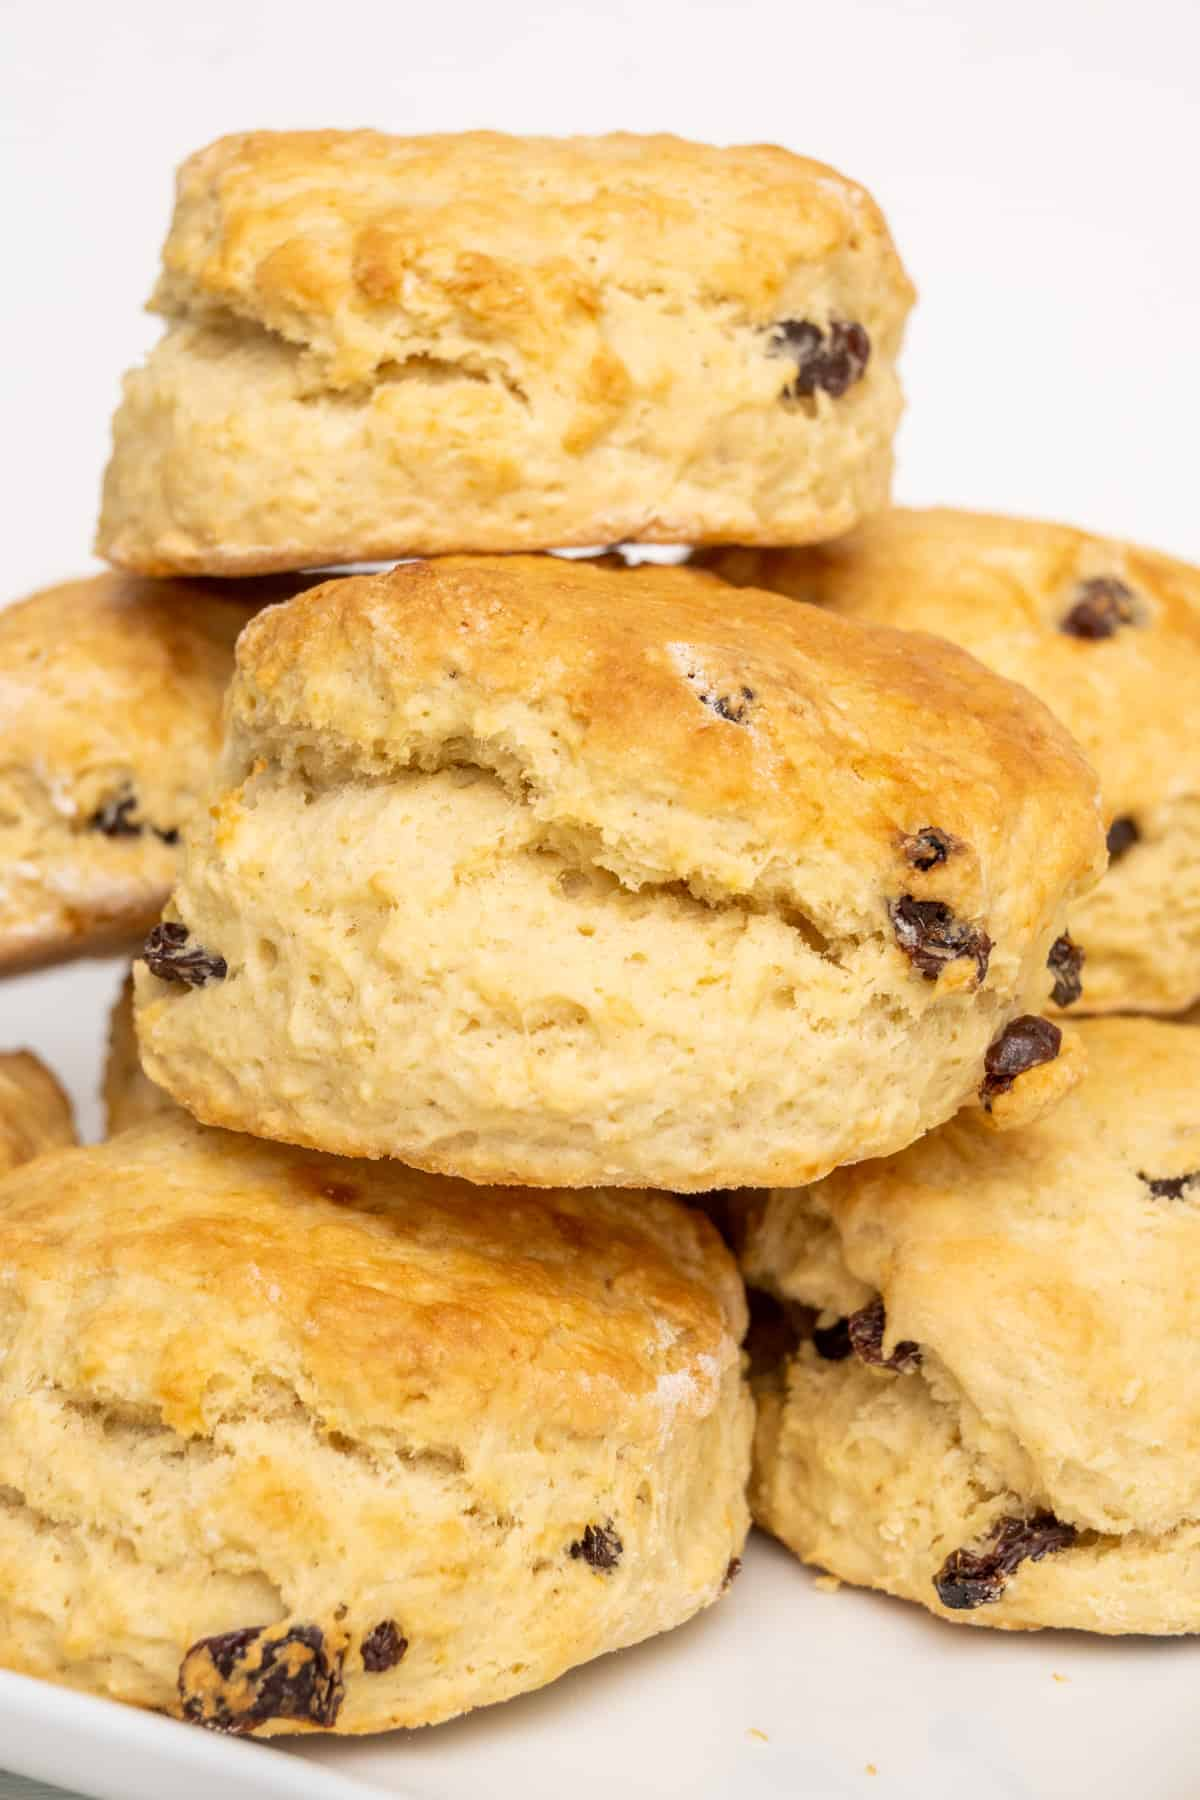 Scones stacked on a plate.